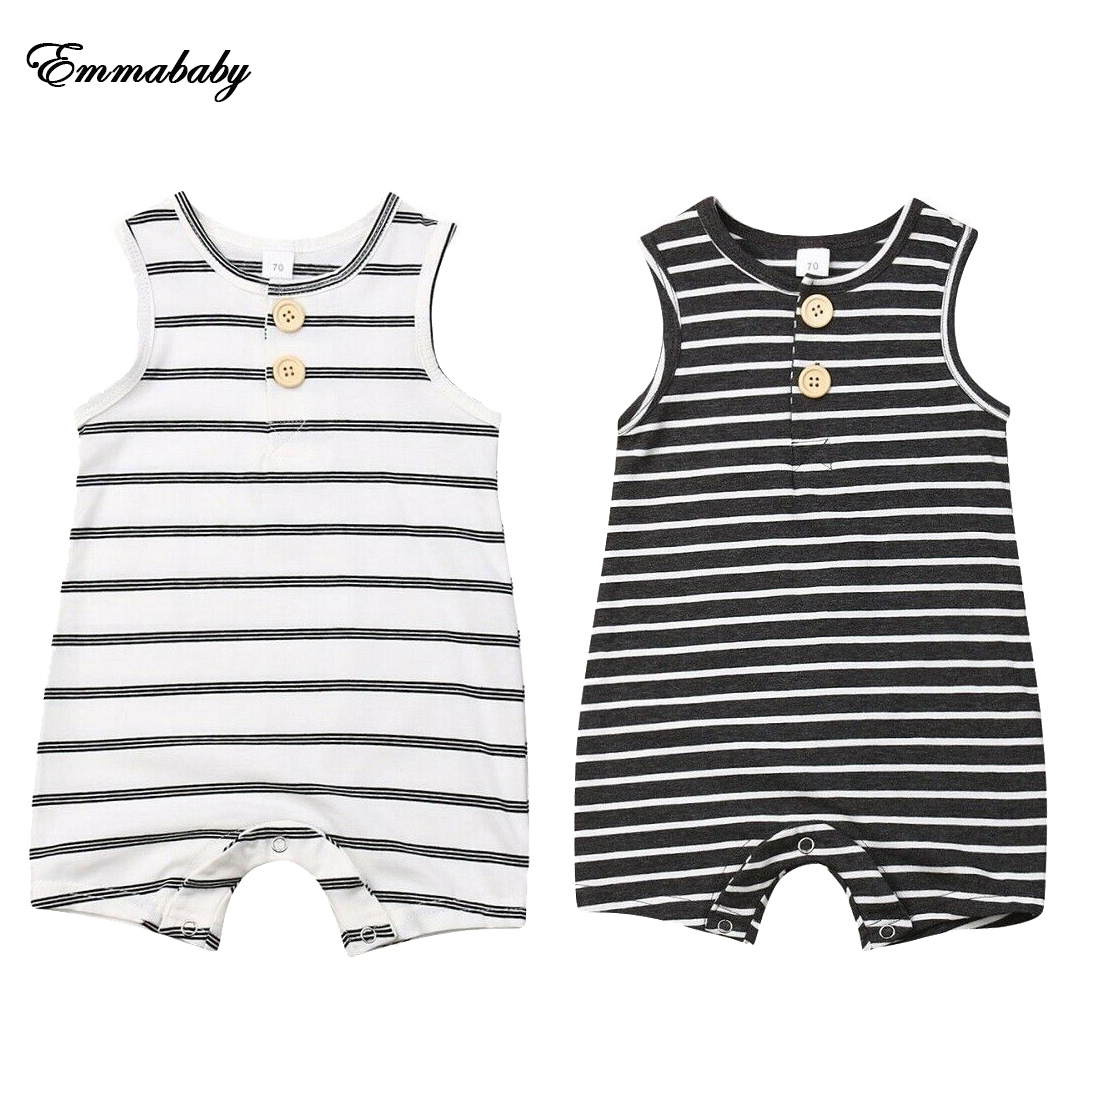 NEW 2020 Newborn Infant Baby Boys Girls Striped Clothes Sleeveless Rompers Summer Outfit